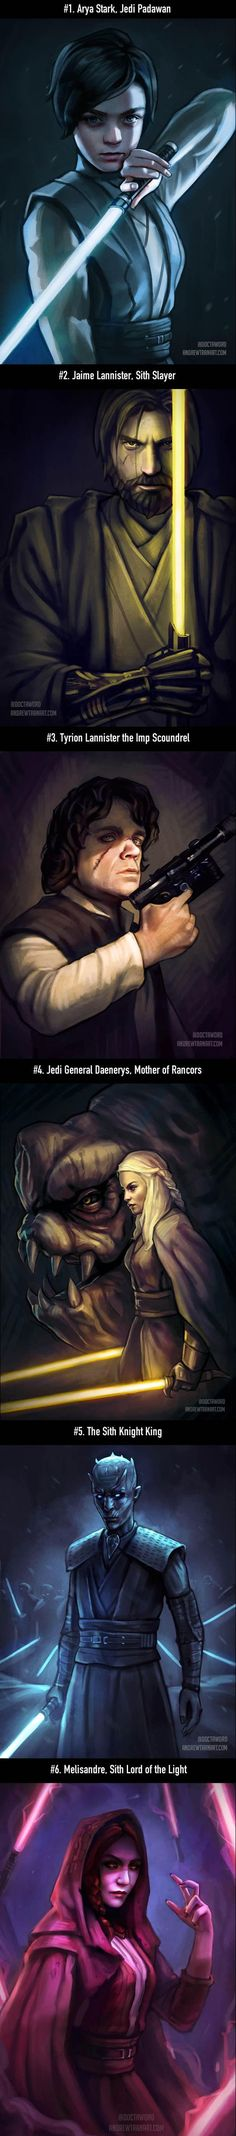 Game of Thrones Characters In Star Wars (By Andrew D Tran.):